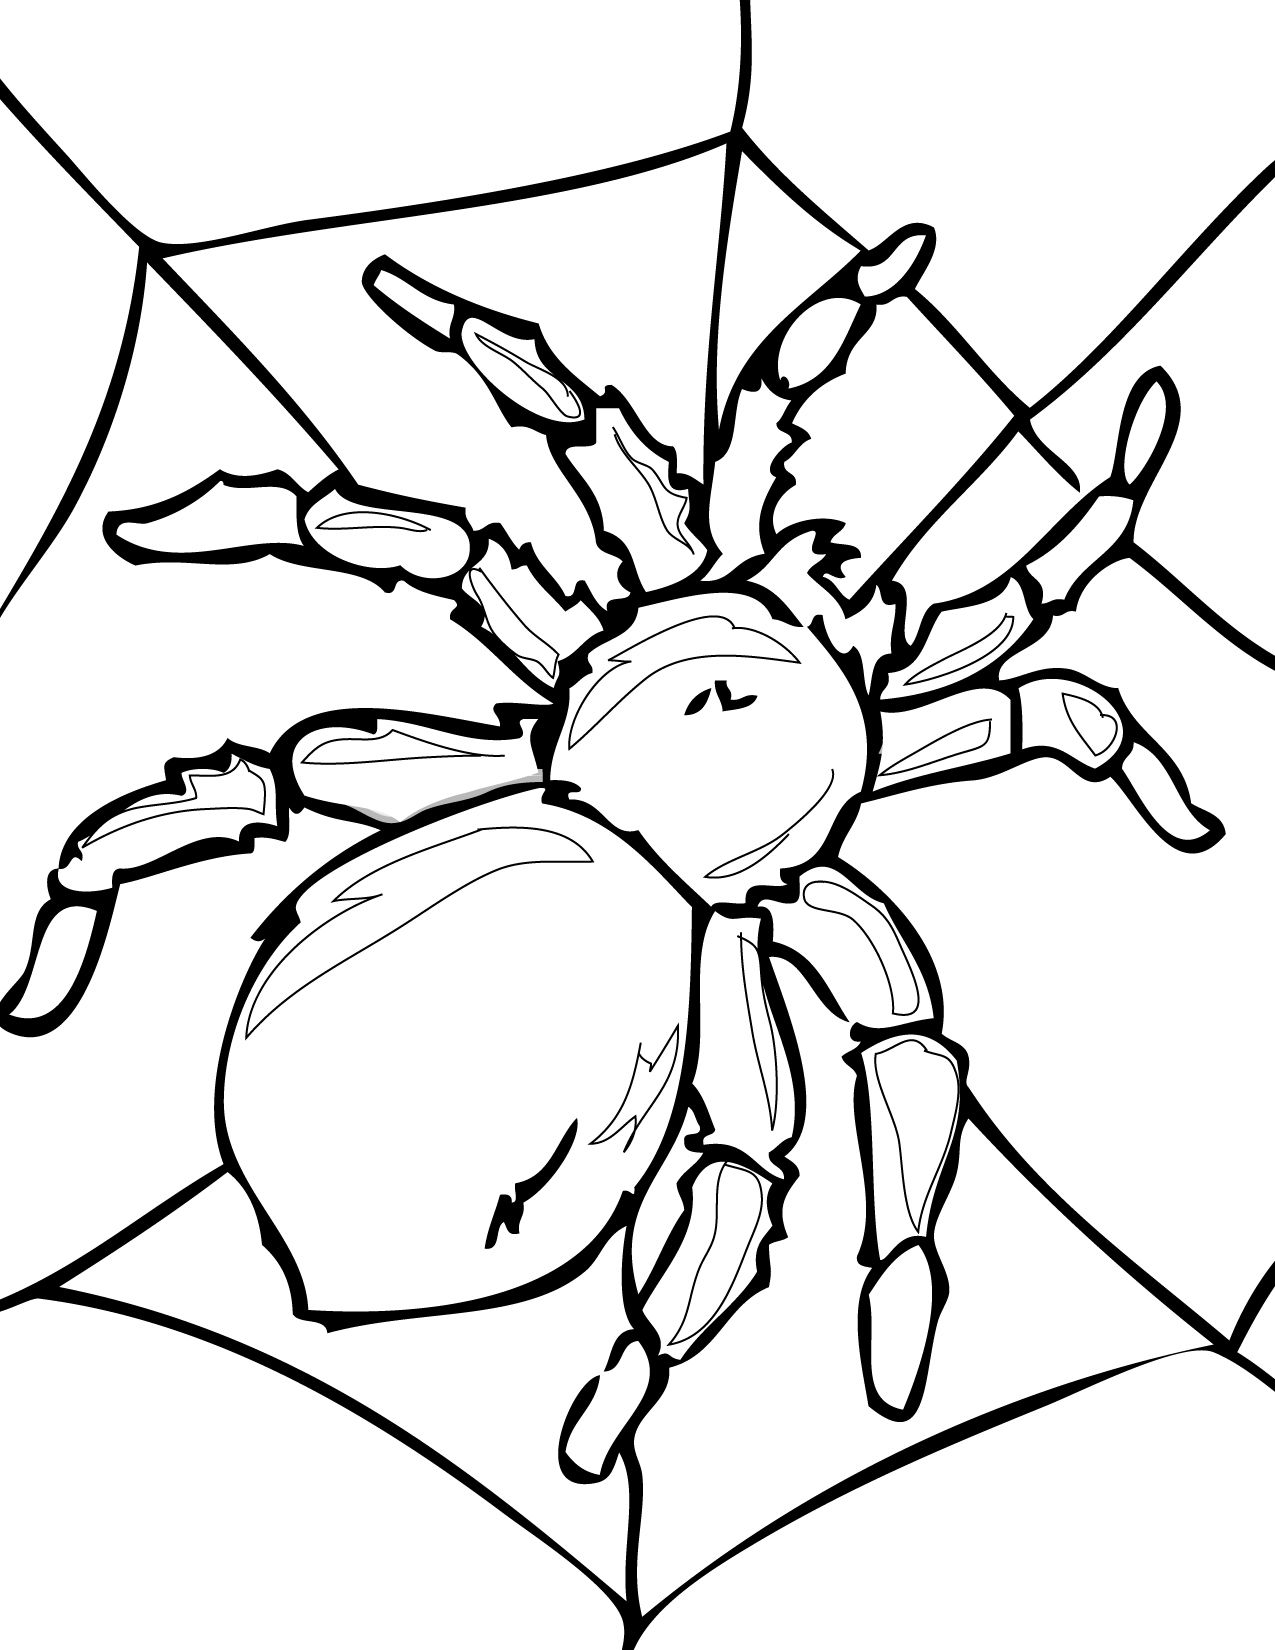 spider coloring pages for kids free online printable coloring pages sheets for kids get the latest free spider coloring pages for kids images - Spider Coloring Book